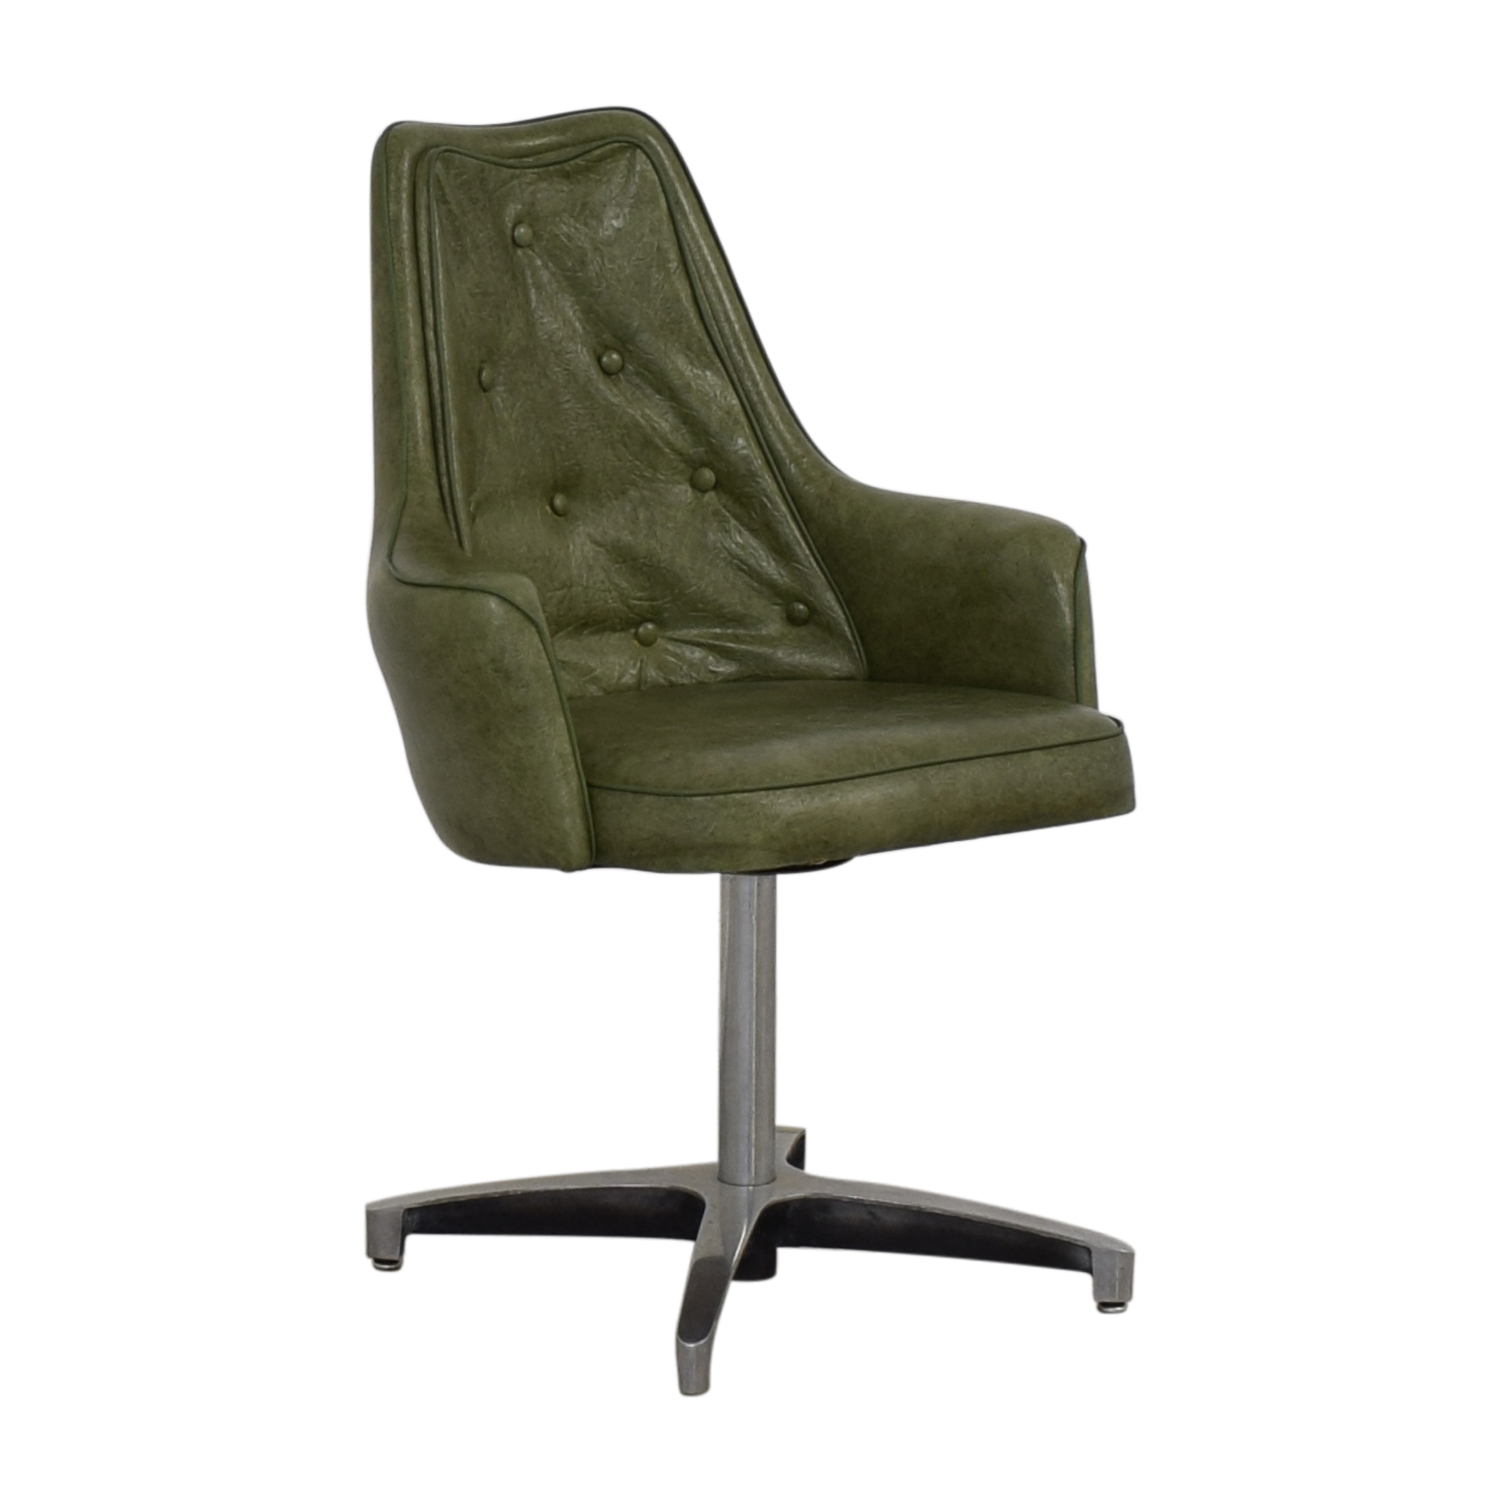 Spartan Chrome Furniture Spartan Chrome Furniture Green Leather Chair second hand